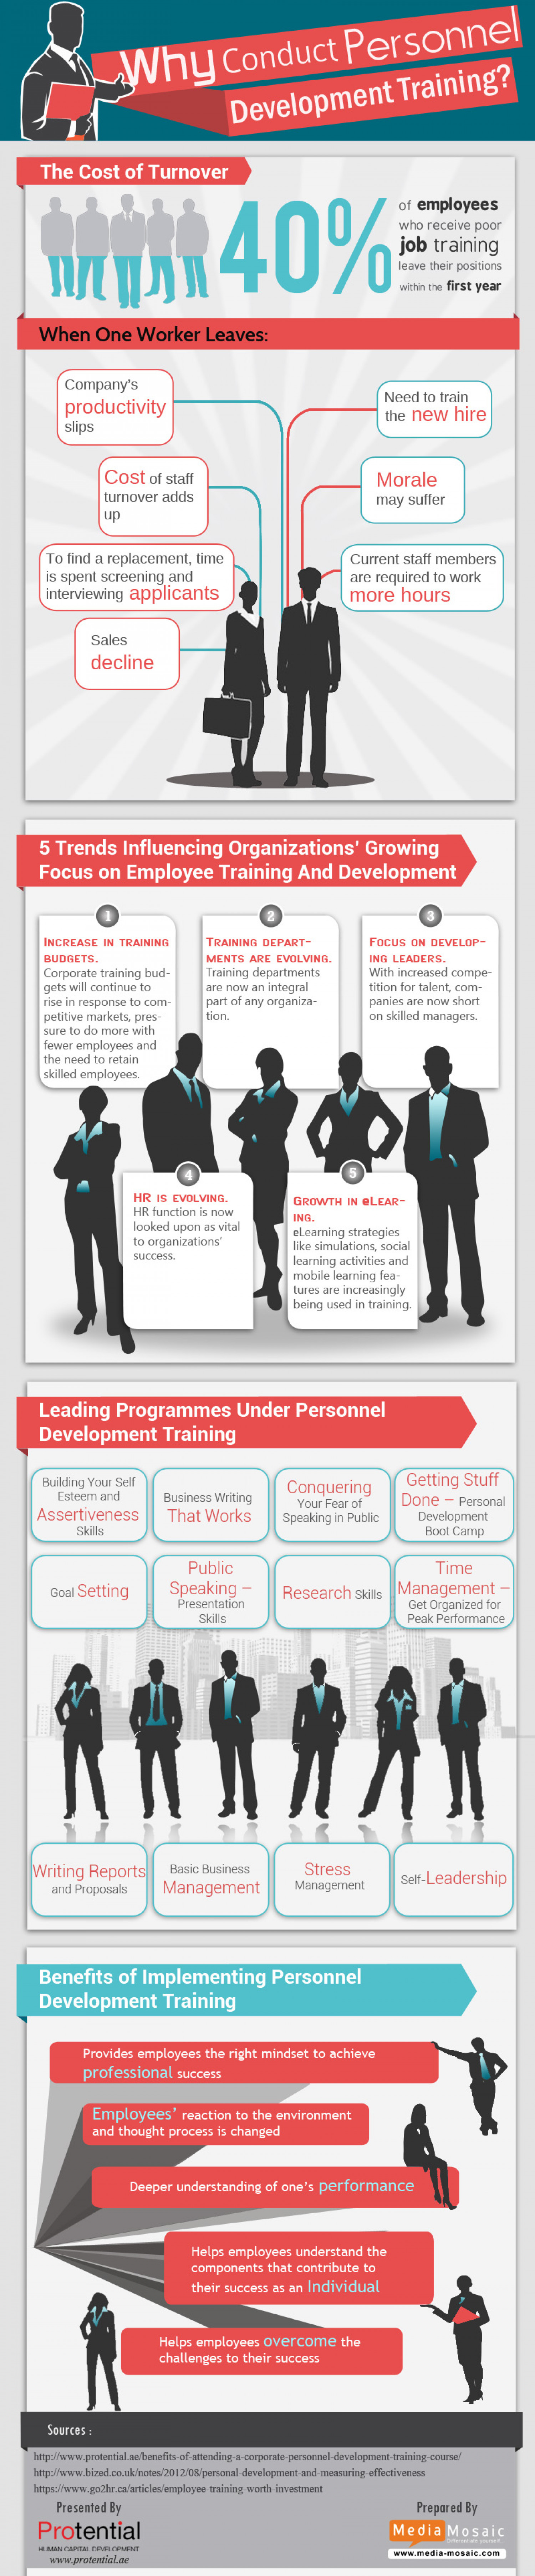 Why Conduct Personnel Development Training Infographic